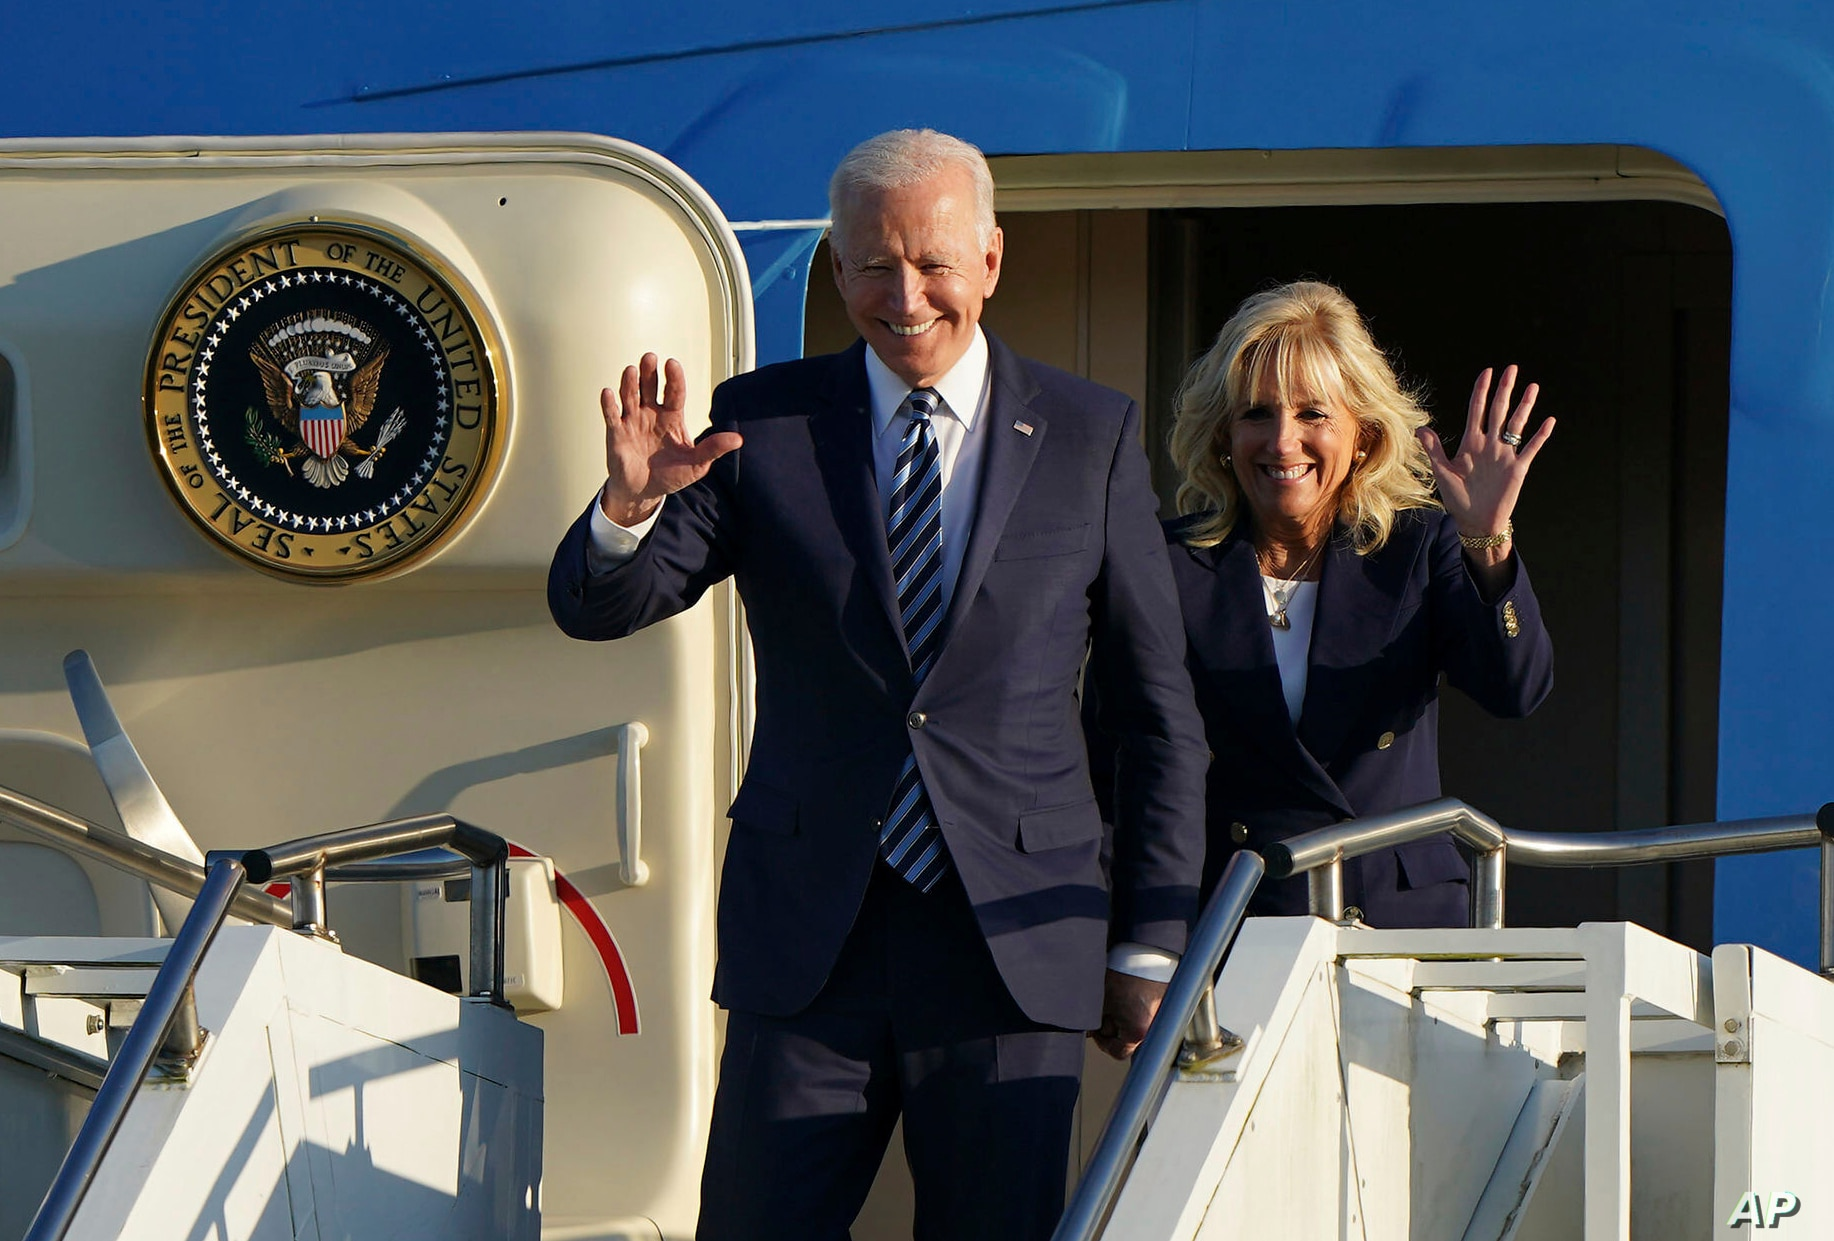 Biden praises United States troops and families during speech in England